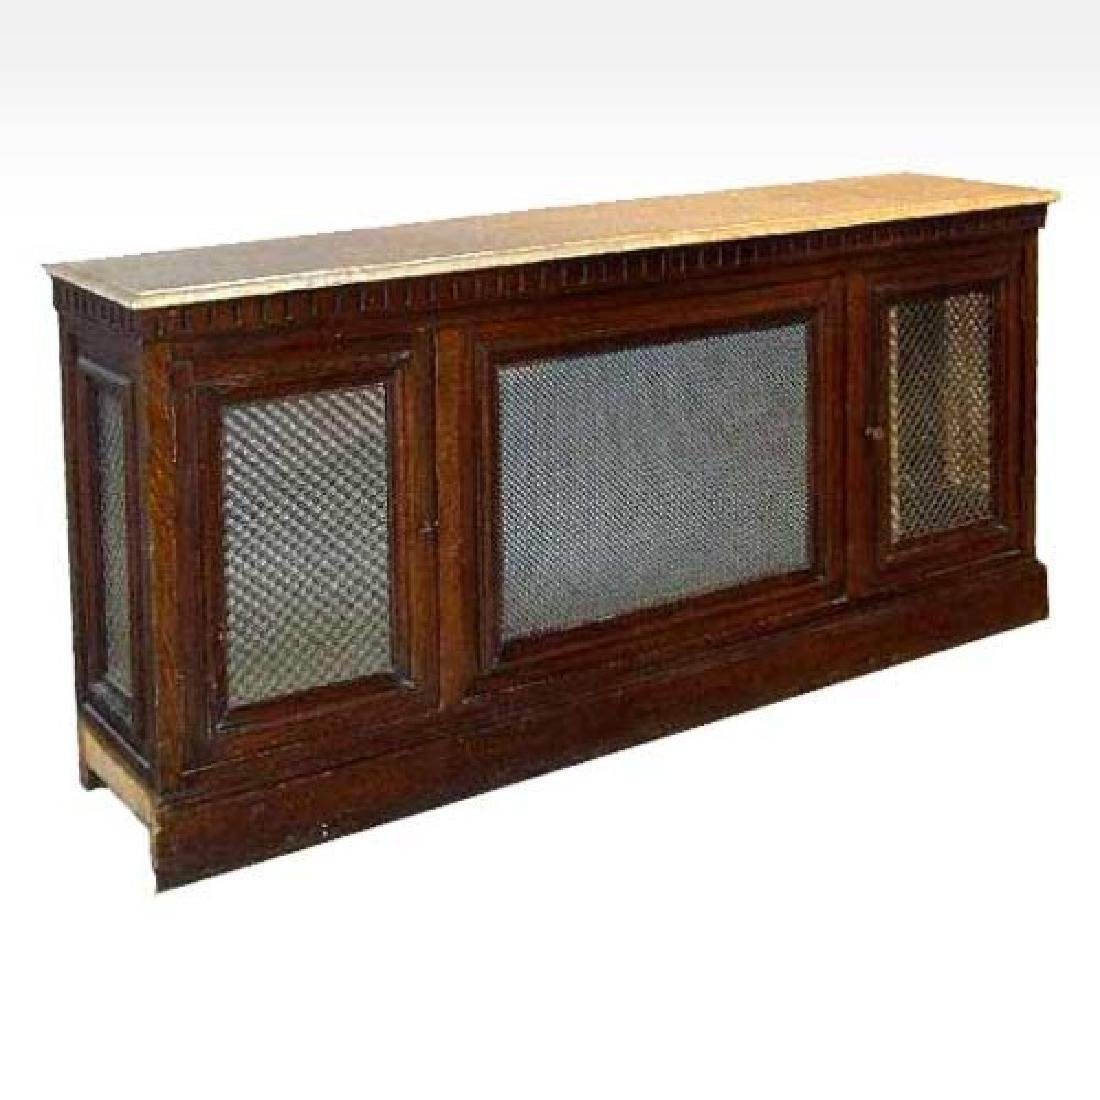 Victorian Marble Top Paneled Radiator Cover